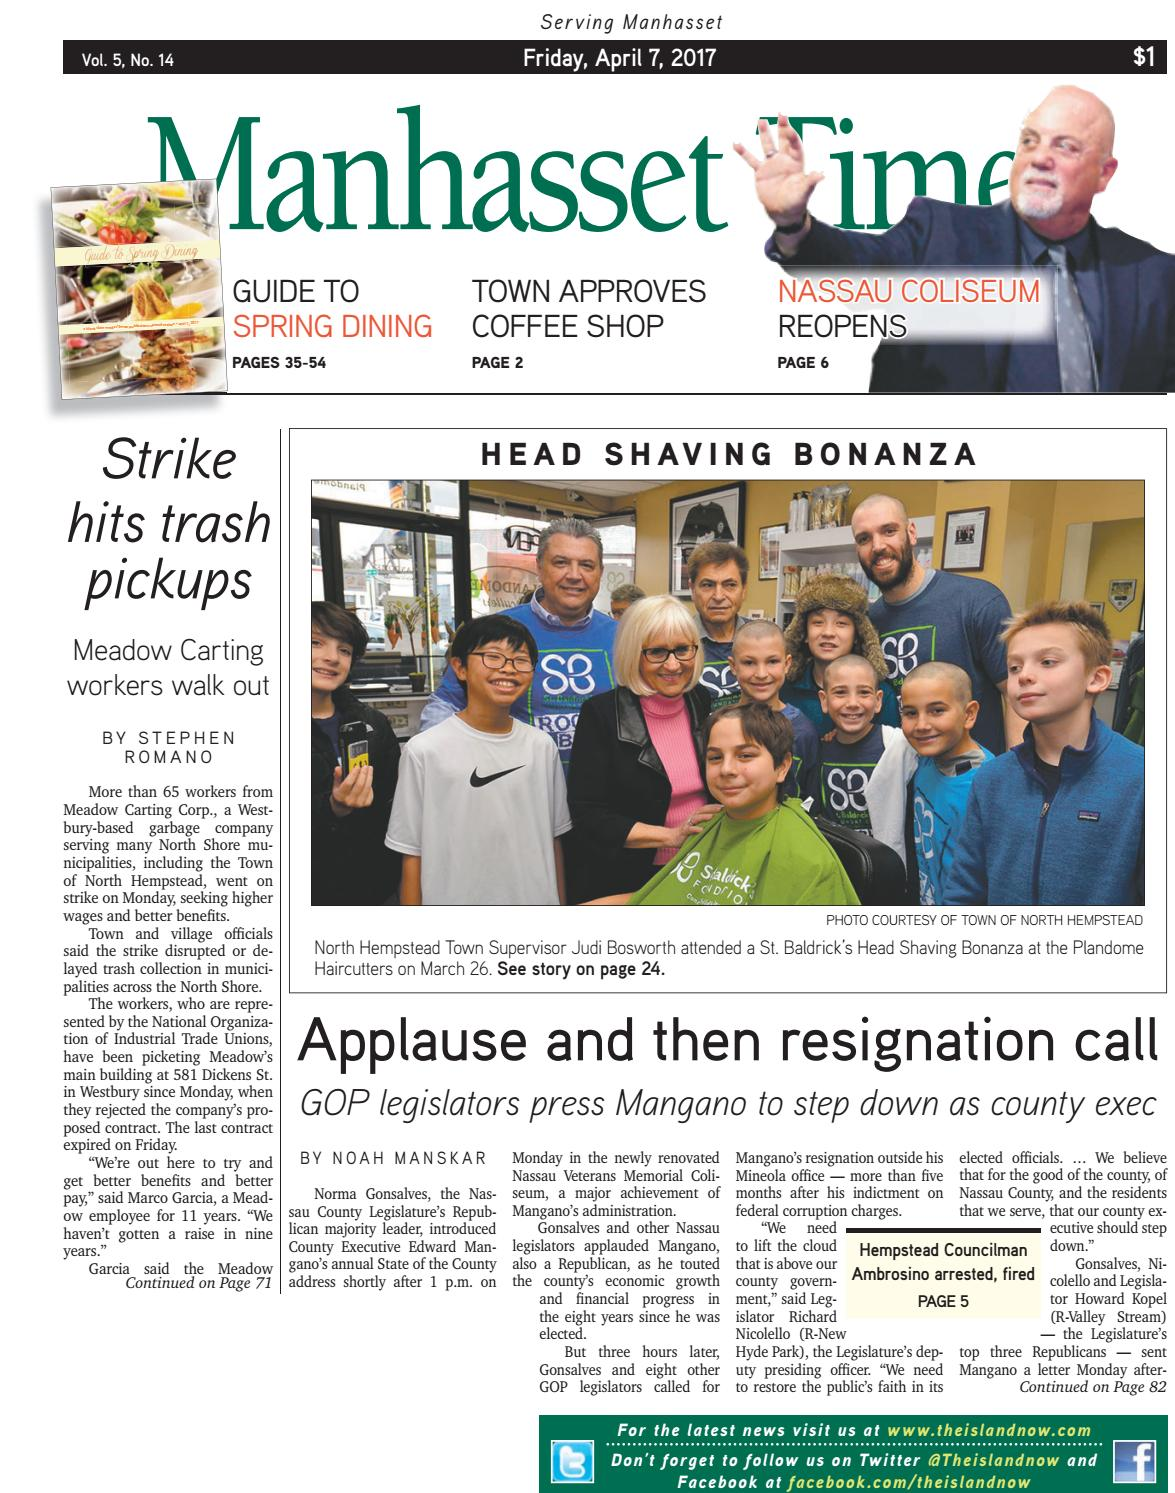 Manhasset times 4 7 16 by The Island Now - issuu